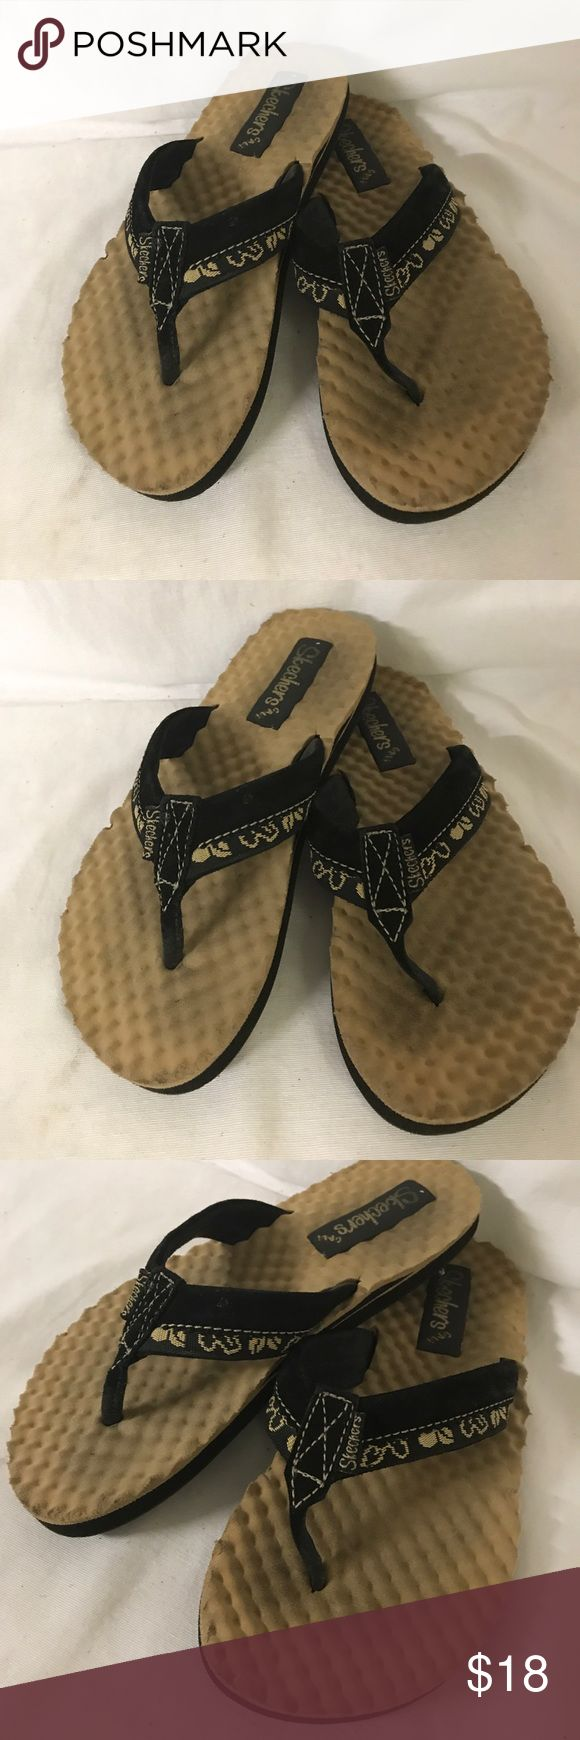 Skechers Slippers Size 7 Looks great was used 2x only has minor washable dirt. Skechers Shoes Slippers